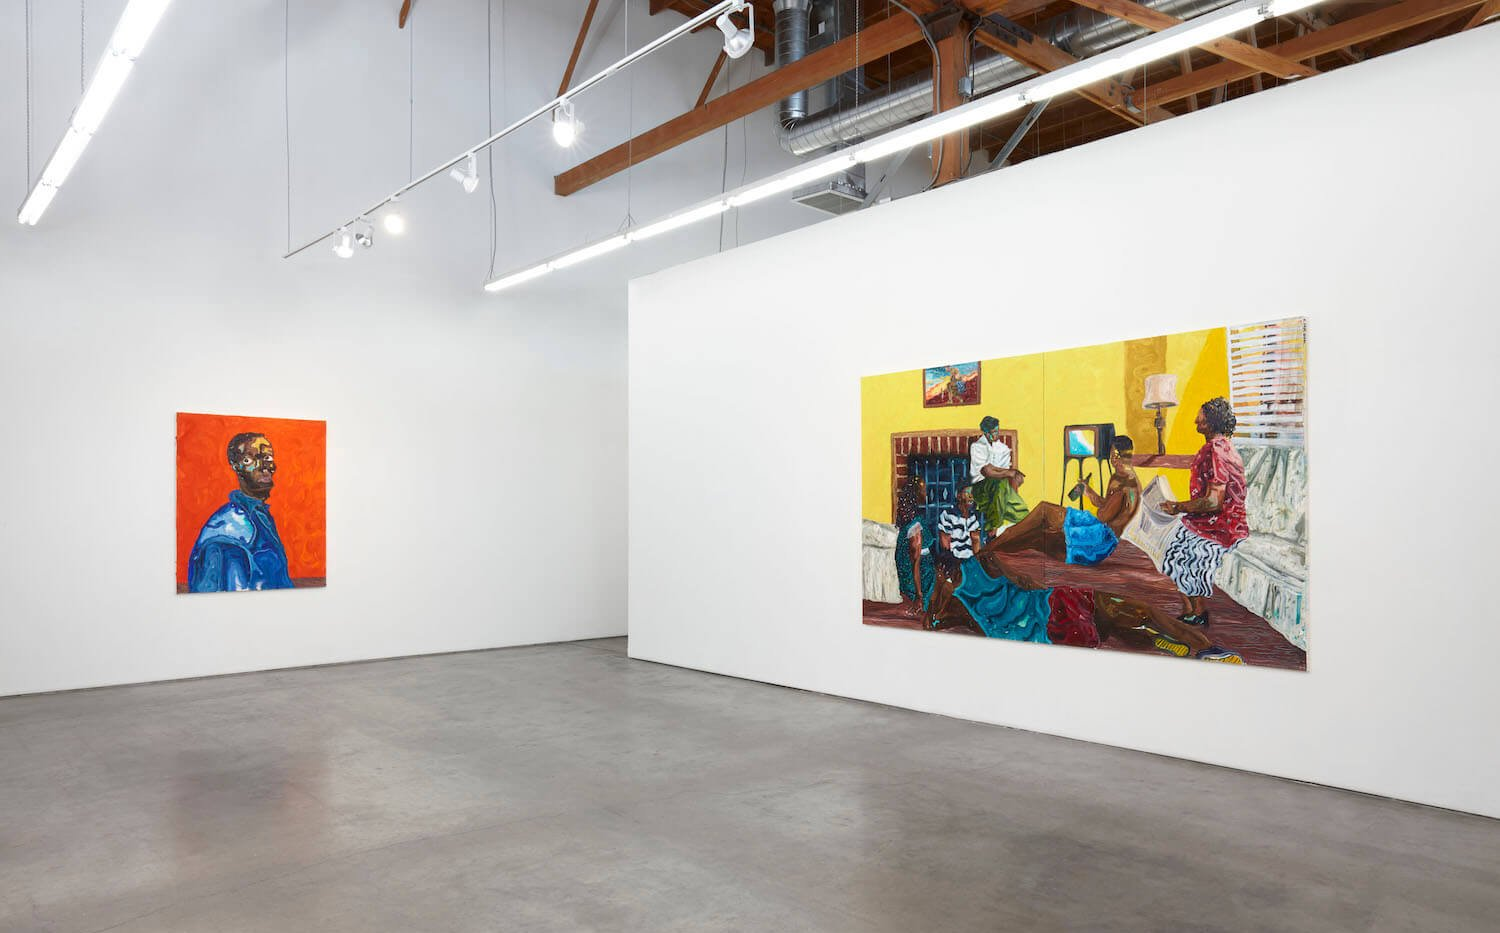 an installation view of paintings by Ludovic Nkoth at François Ghebaly, Los Angeles